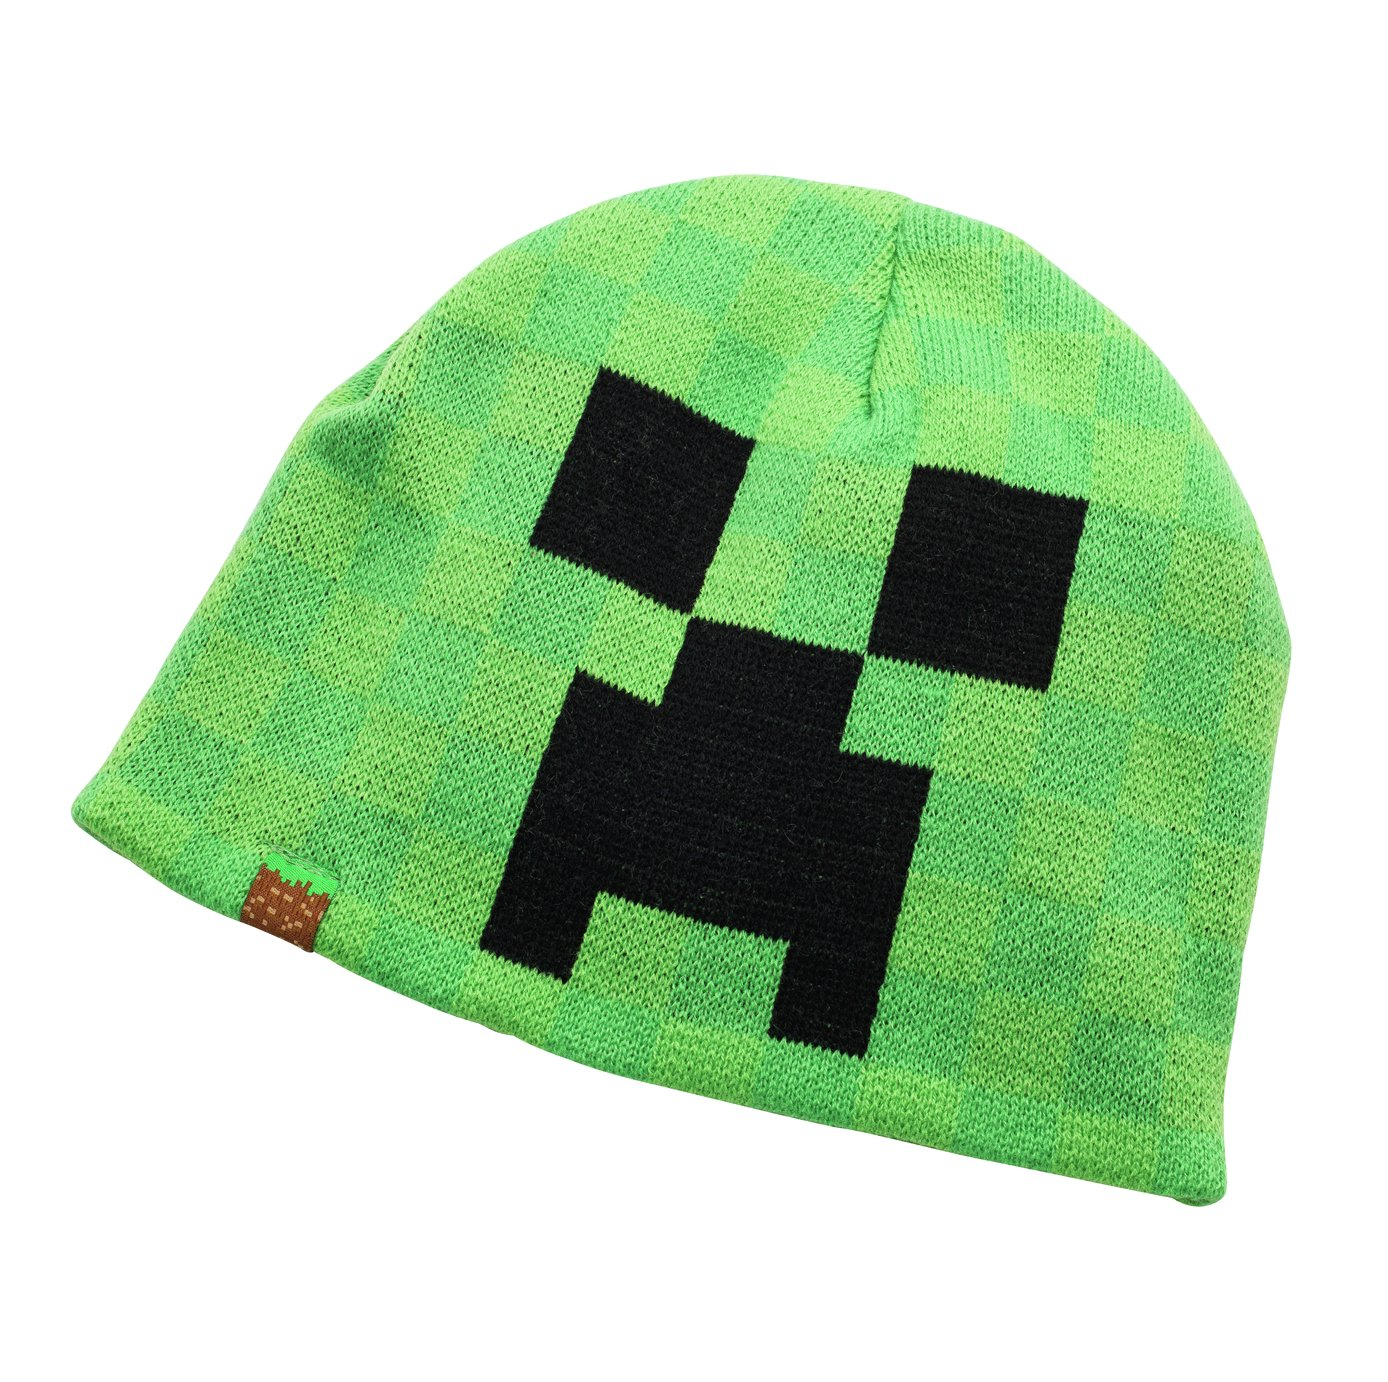 Image of Minecraft - Boys Green Beanie Hat - 11-14 Years